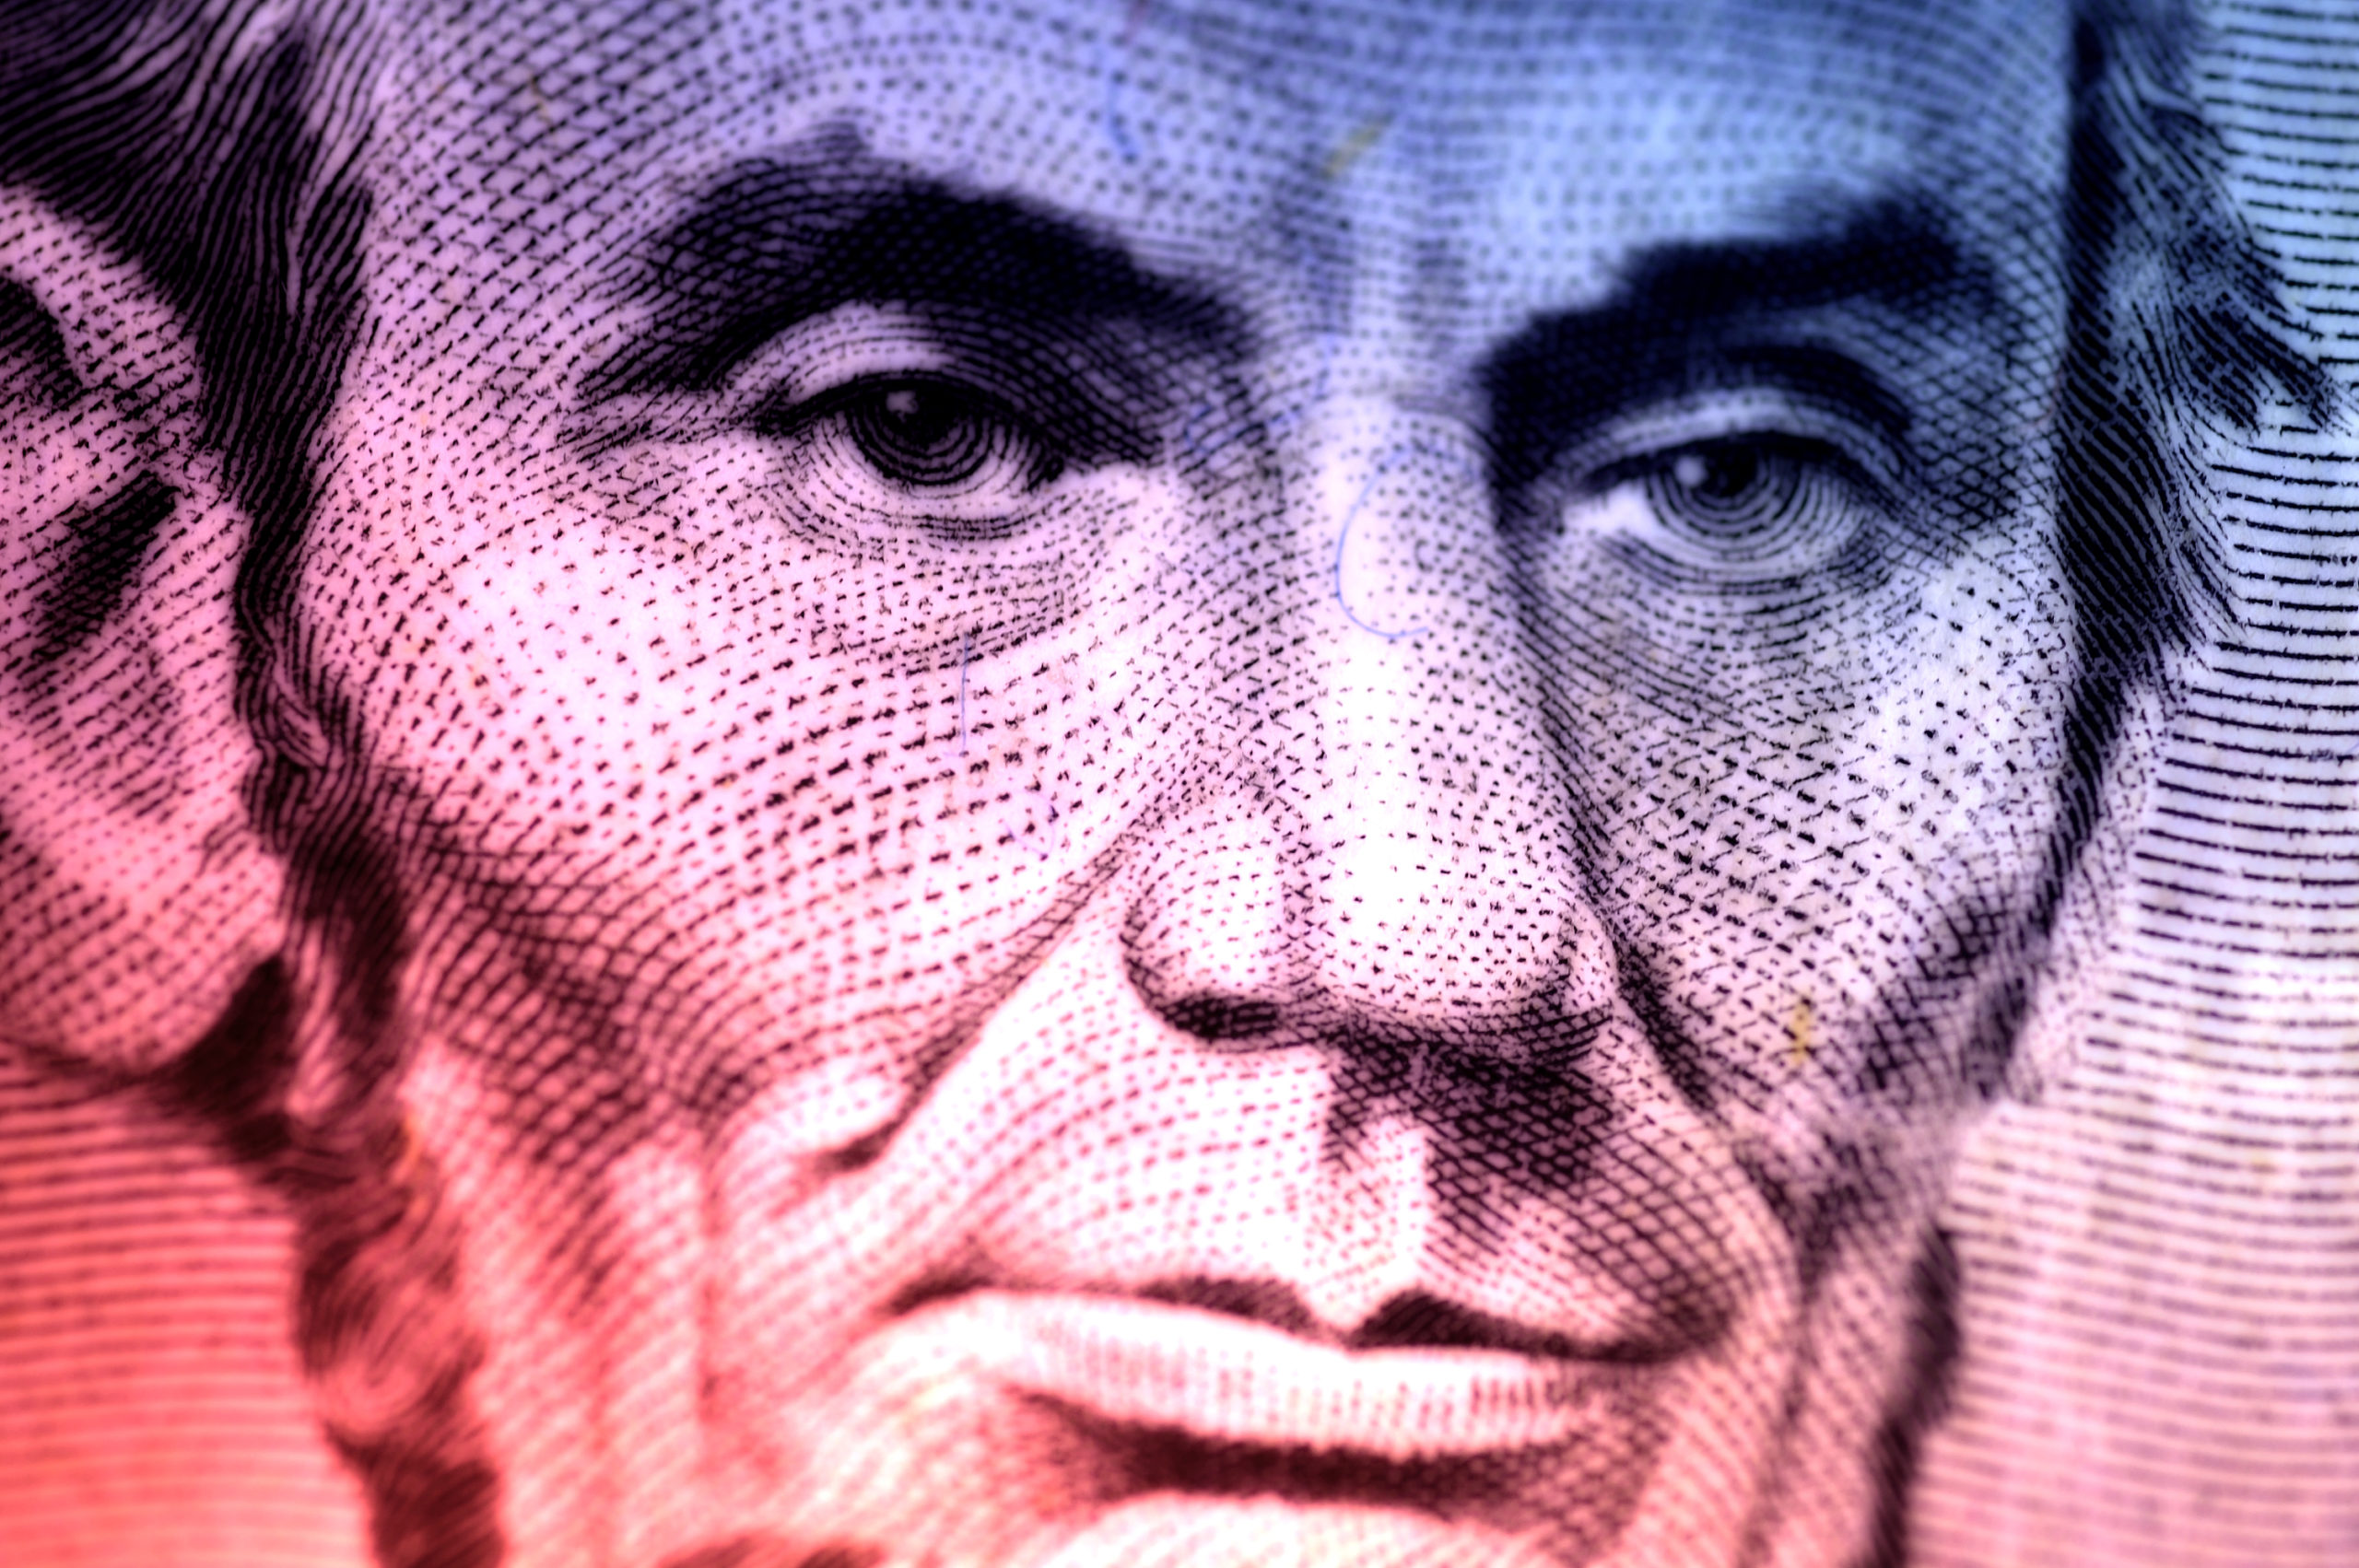 Photo of Abraham Lincoln On The Five Dollar Bill With Color and Blur Effect.